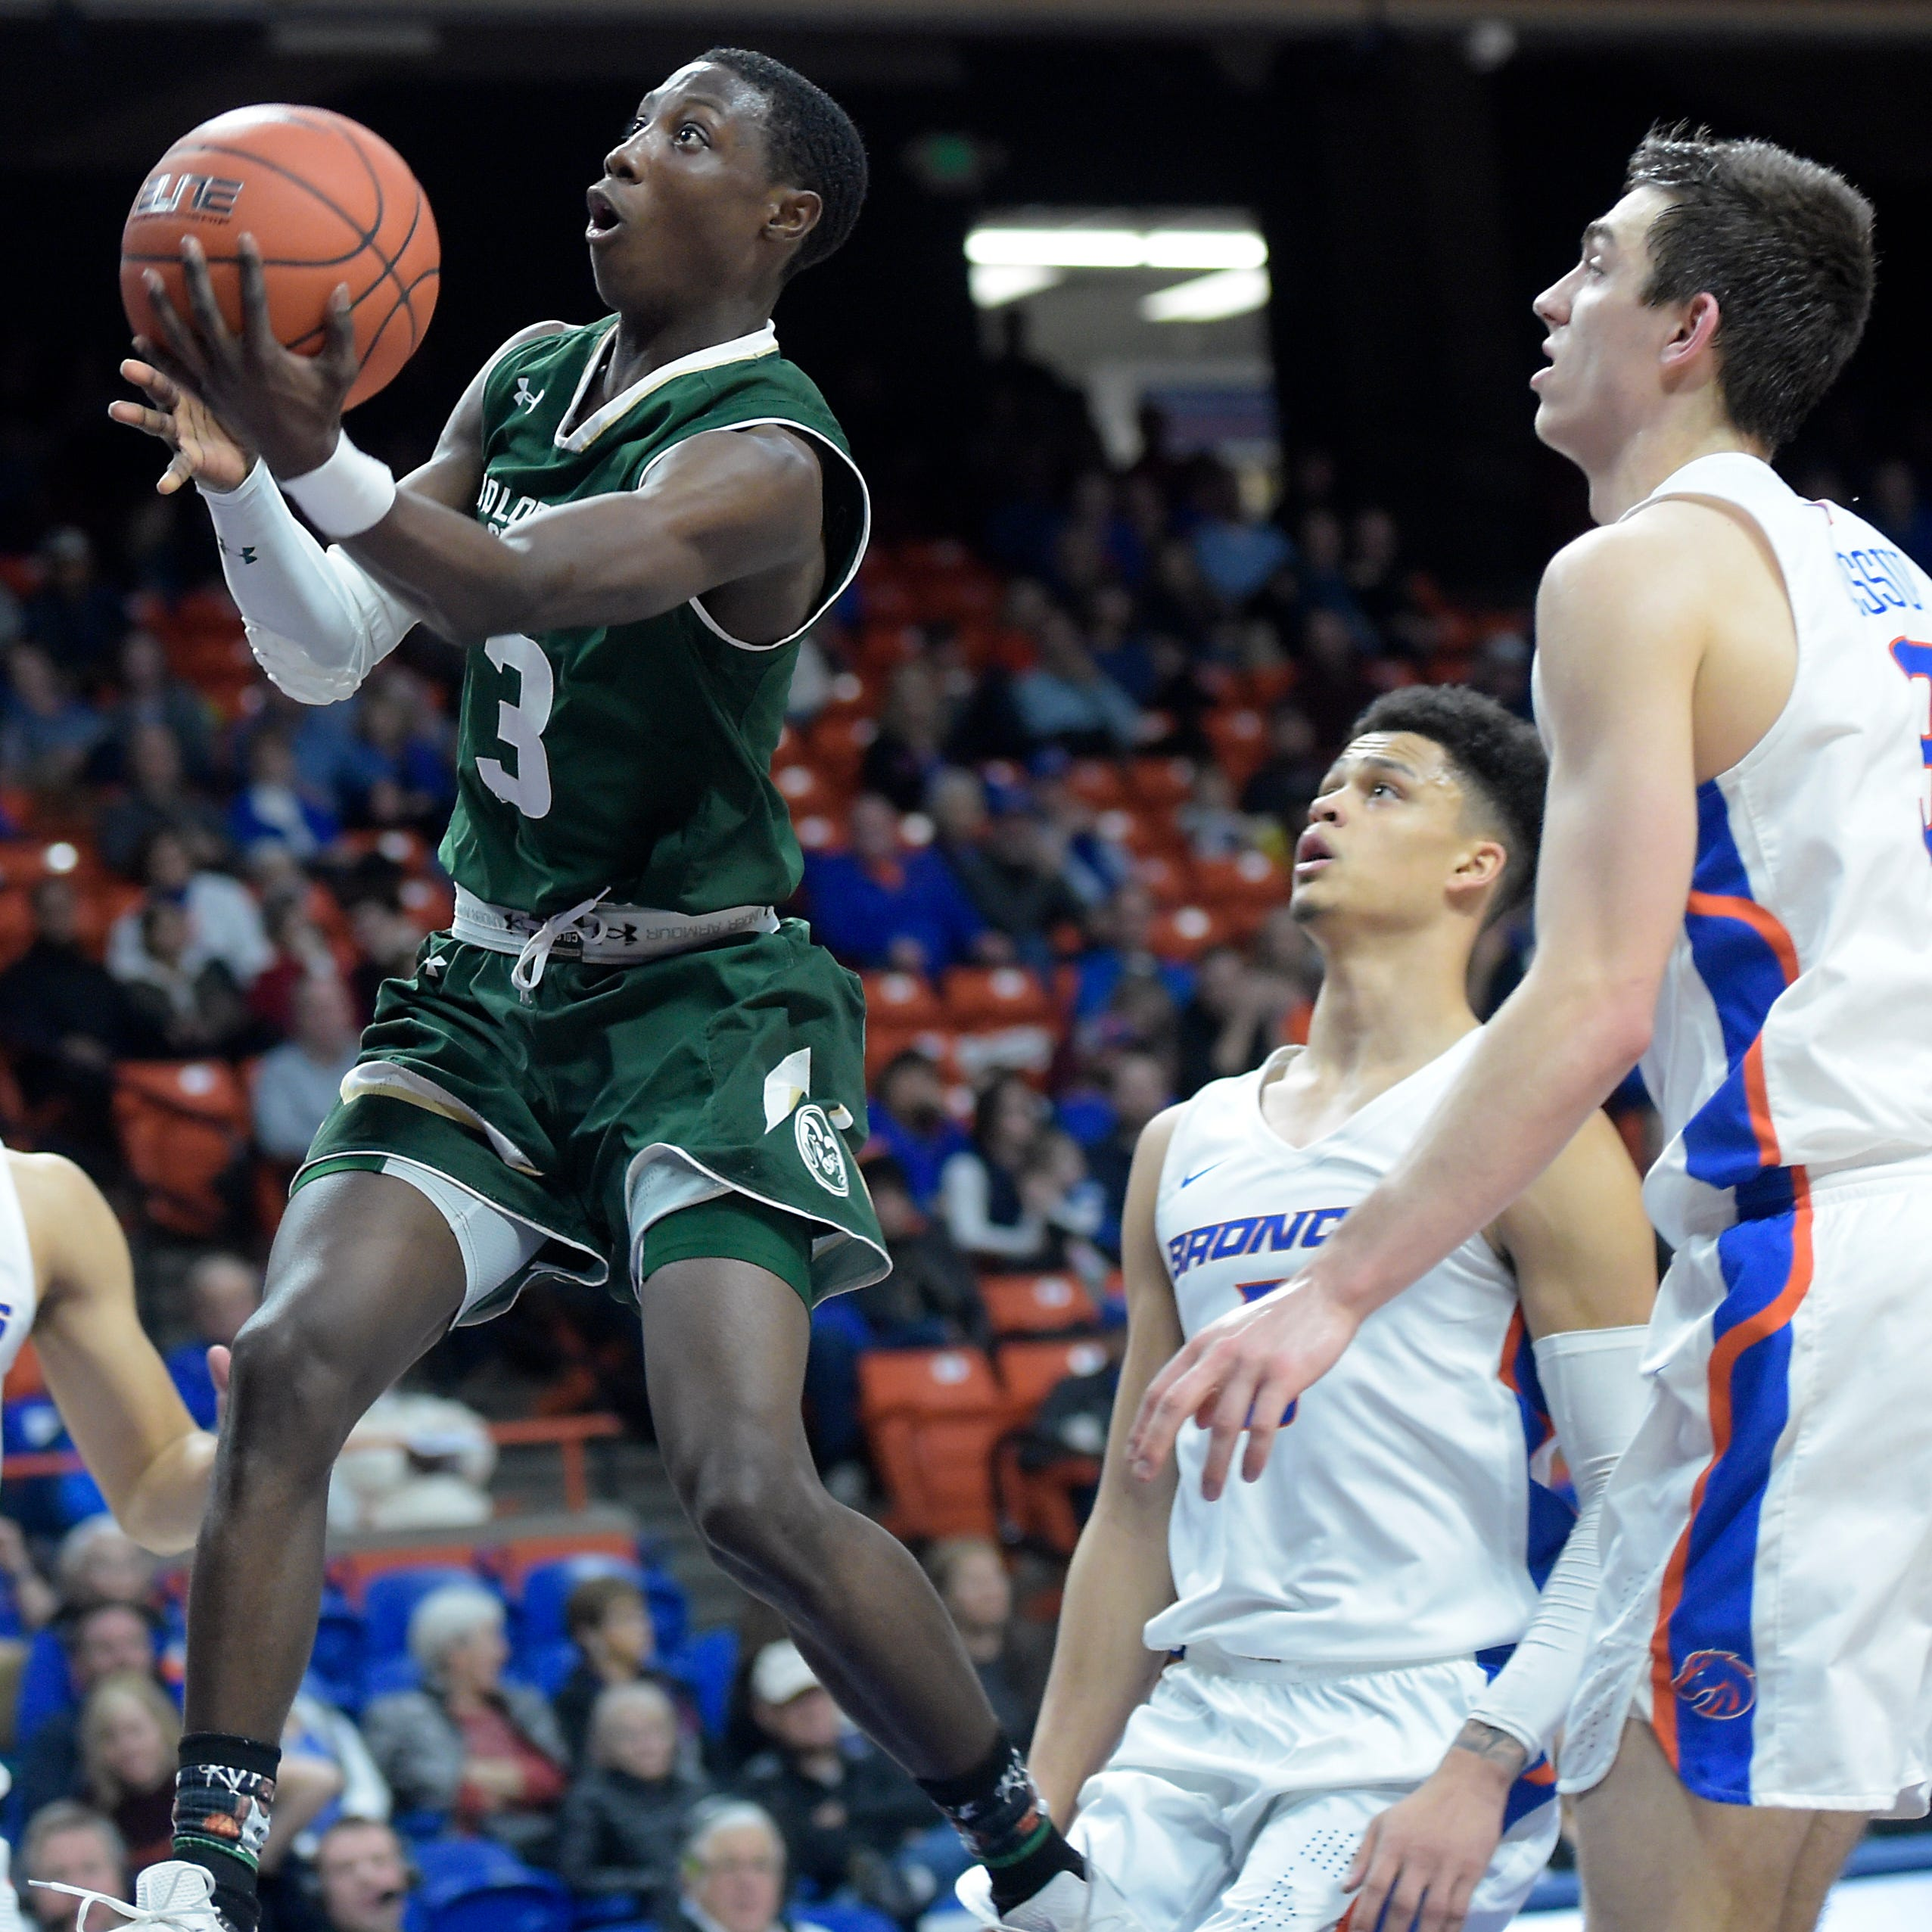 Mountain West men's basketball tournament bracket is set